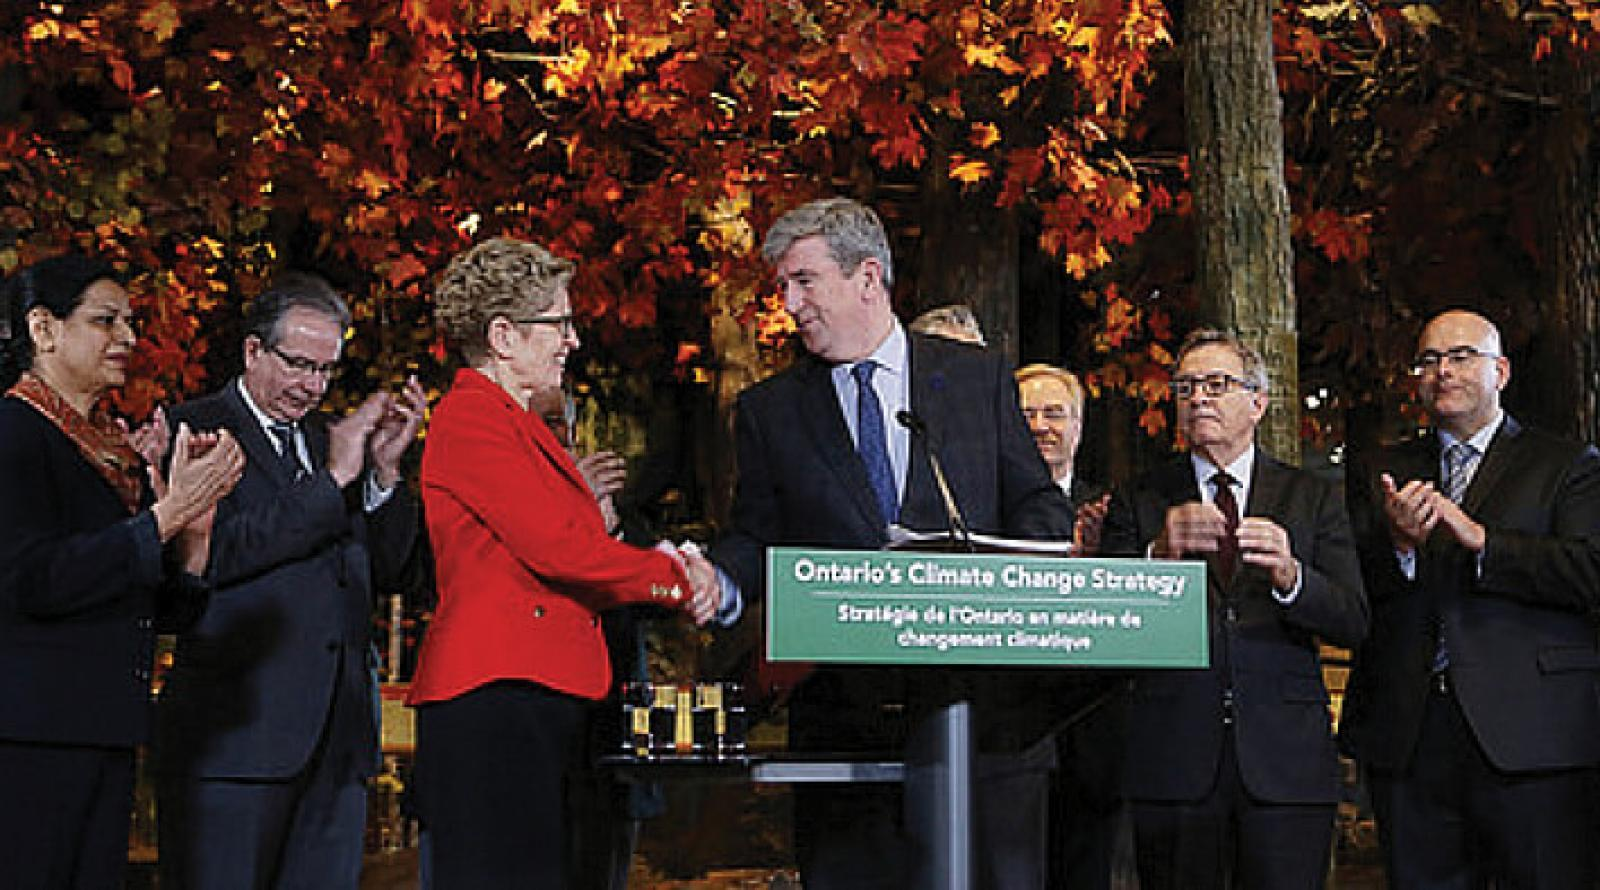 Ontario Premier Kathleen Wynne and Minister of the Environment and Climate Change Glen Murray announce the provincial Climate Change Strategy.